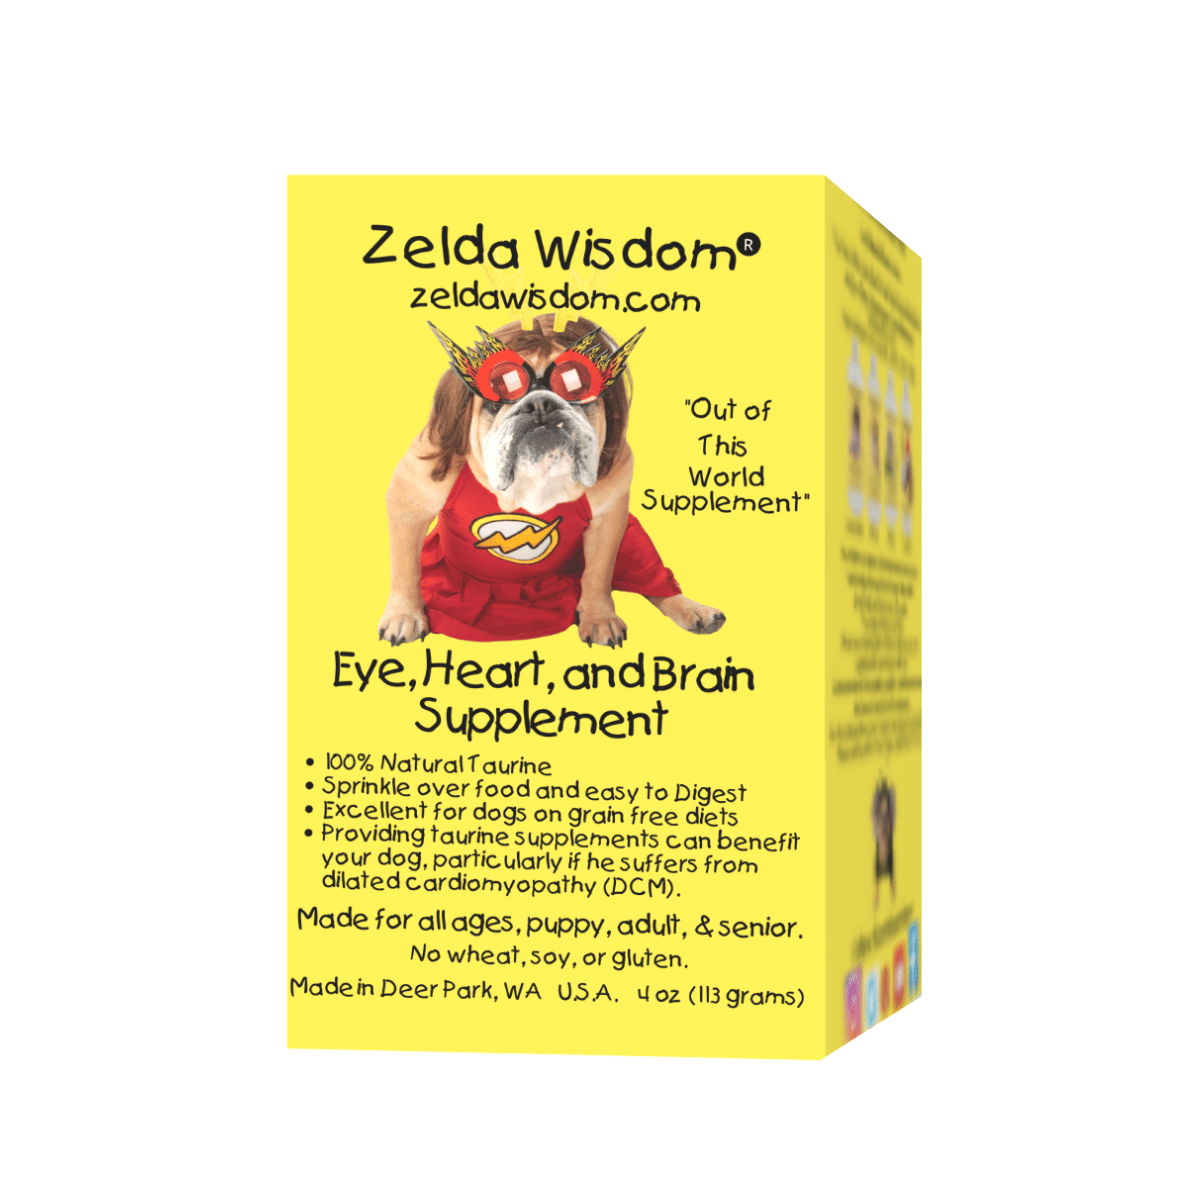 Supplement Taurine Blend Essential for Heart, Eye, and Brain for Dogs on GRAIN FREE DIETS